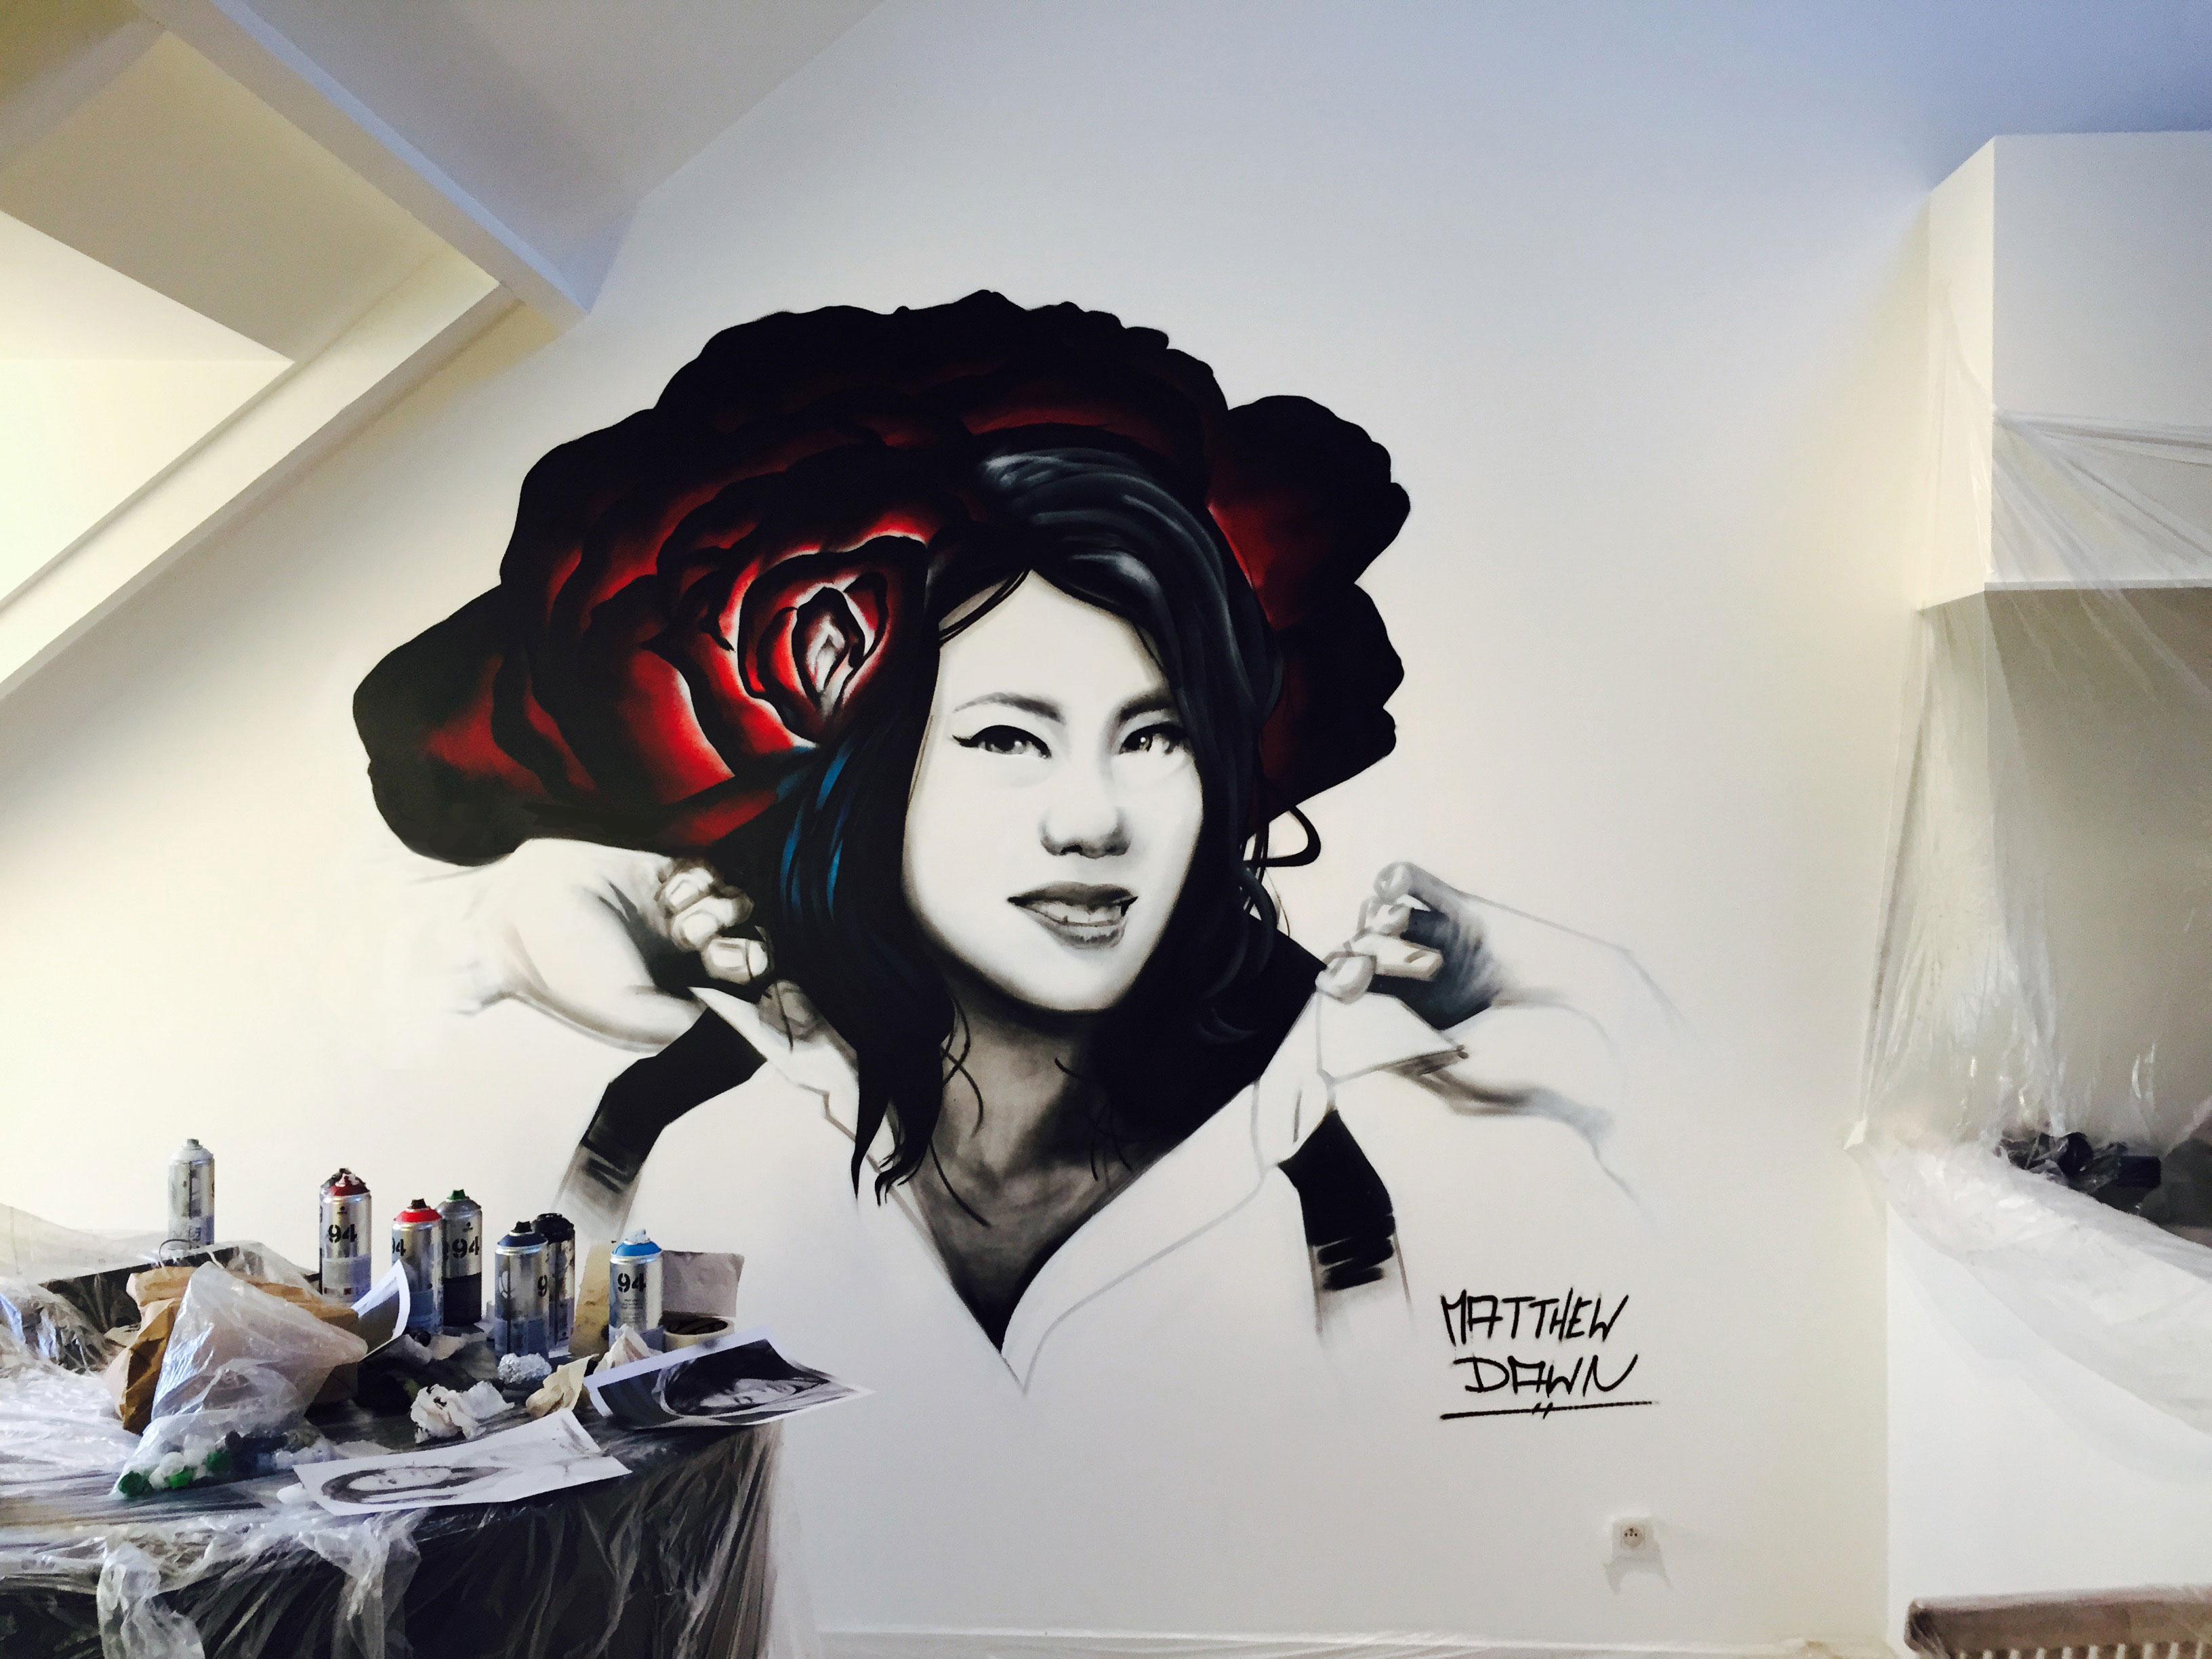 Asian Portrait by Graffiti Artist Matthew Dawn - Street Art Belgium Graffiti Belgium